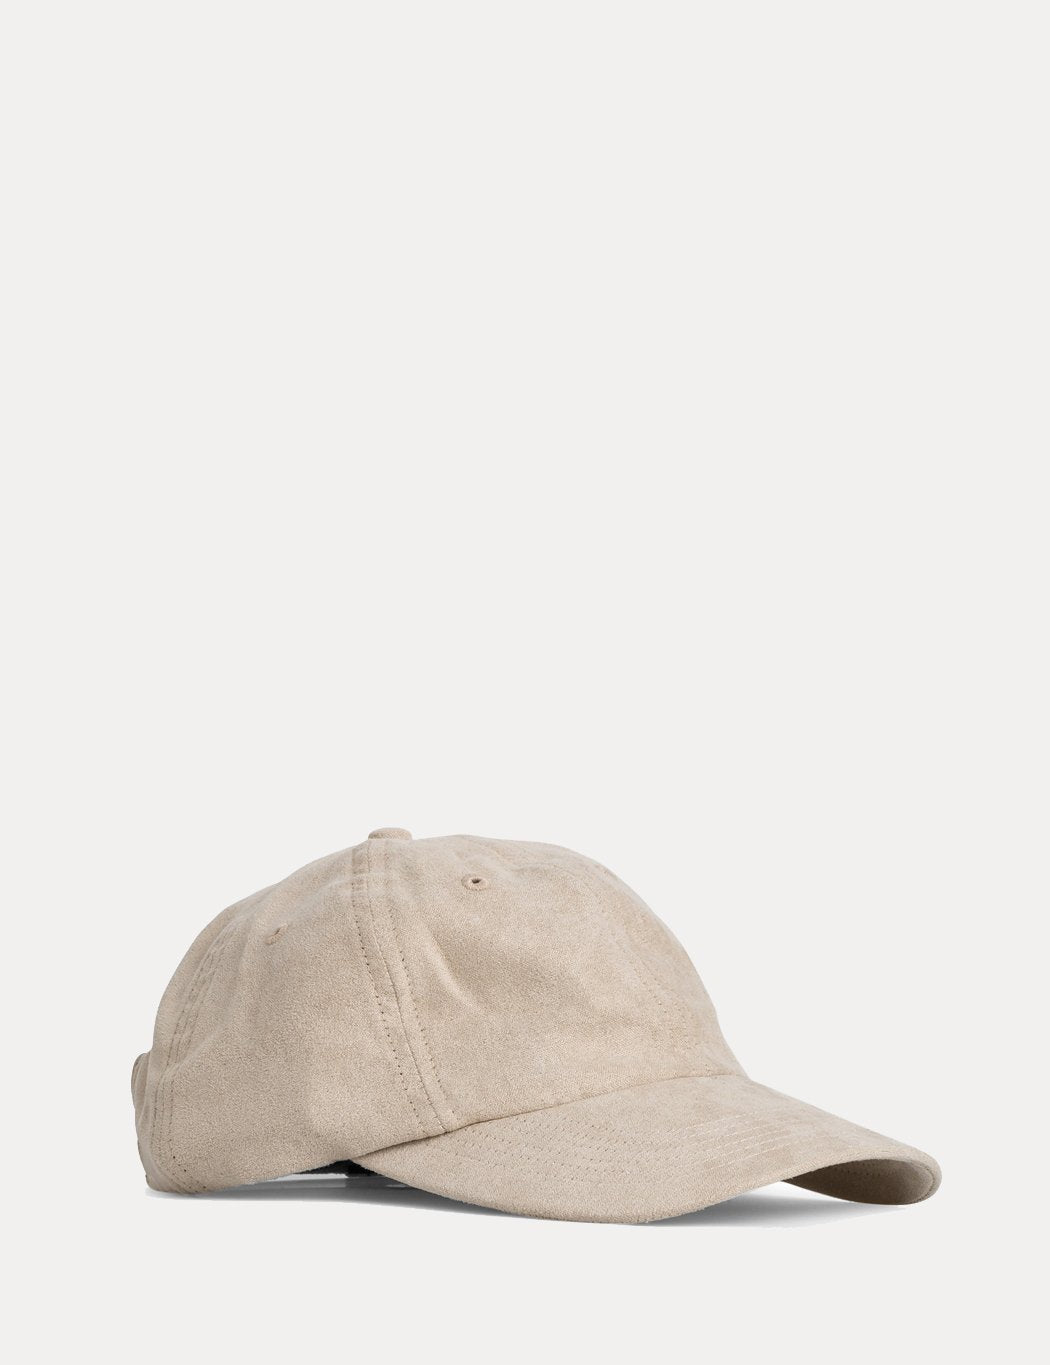 c7d068eae88 Norse Projects Fake Suede Sports Cap - Sand